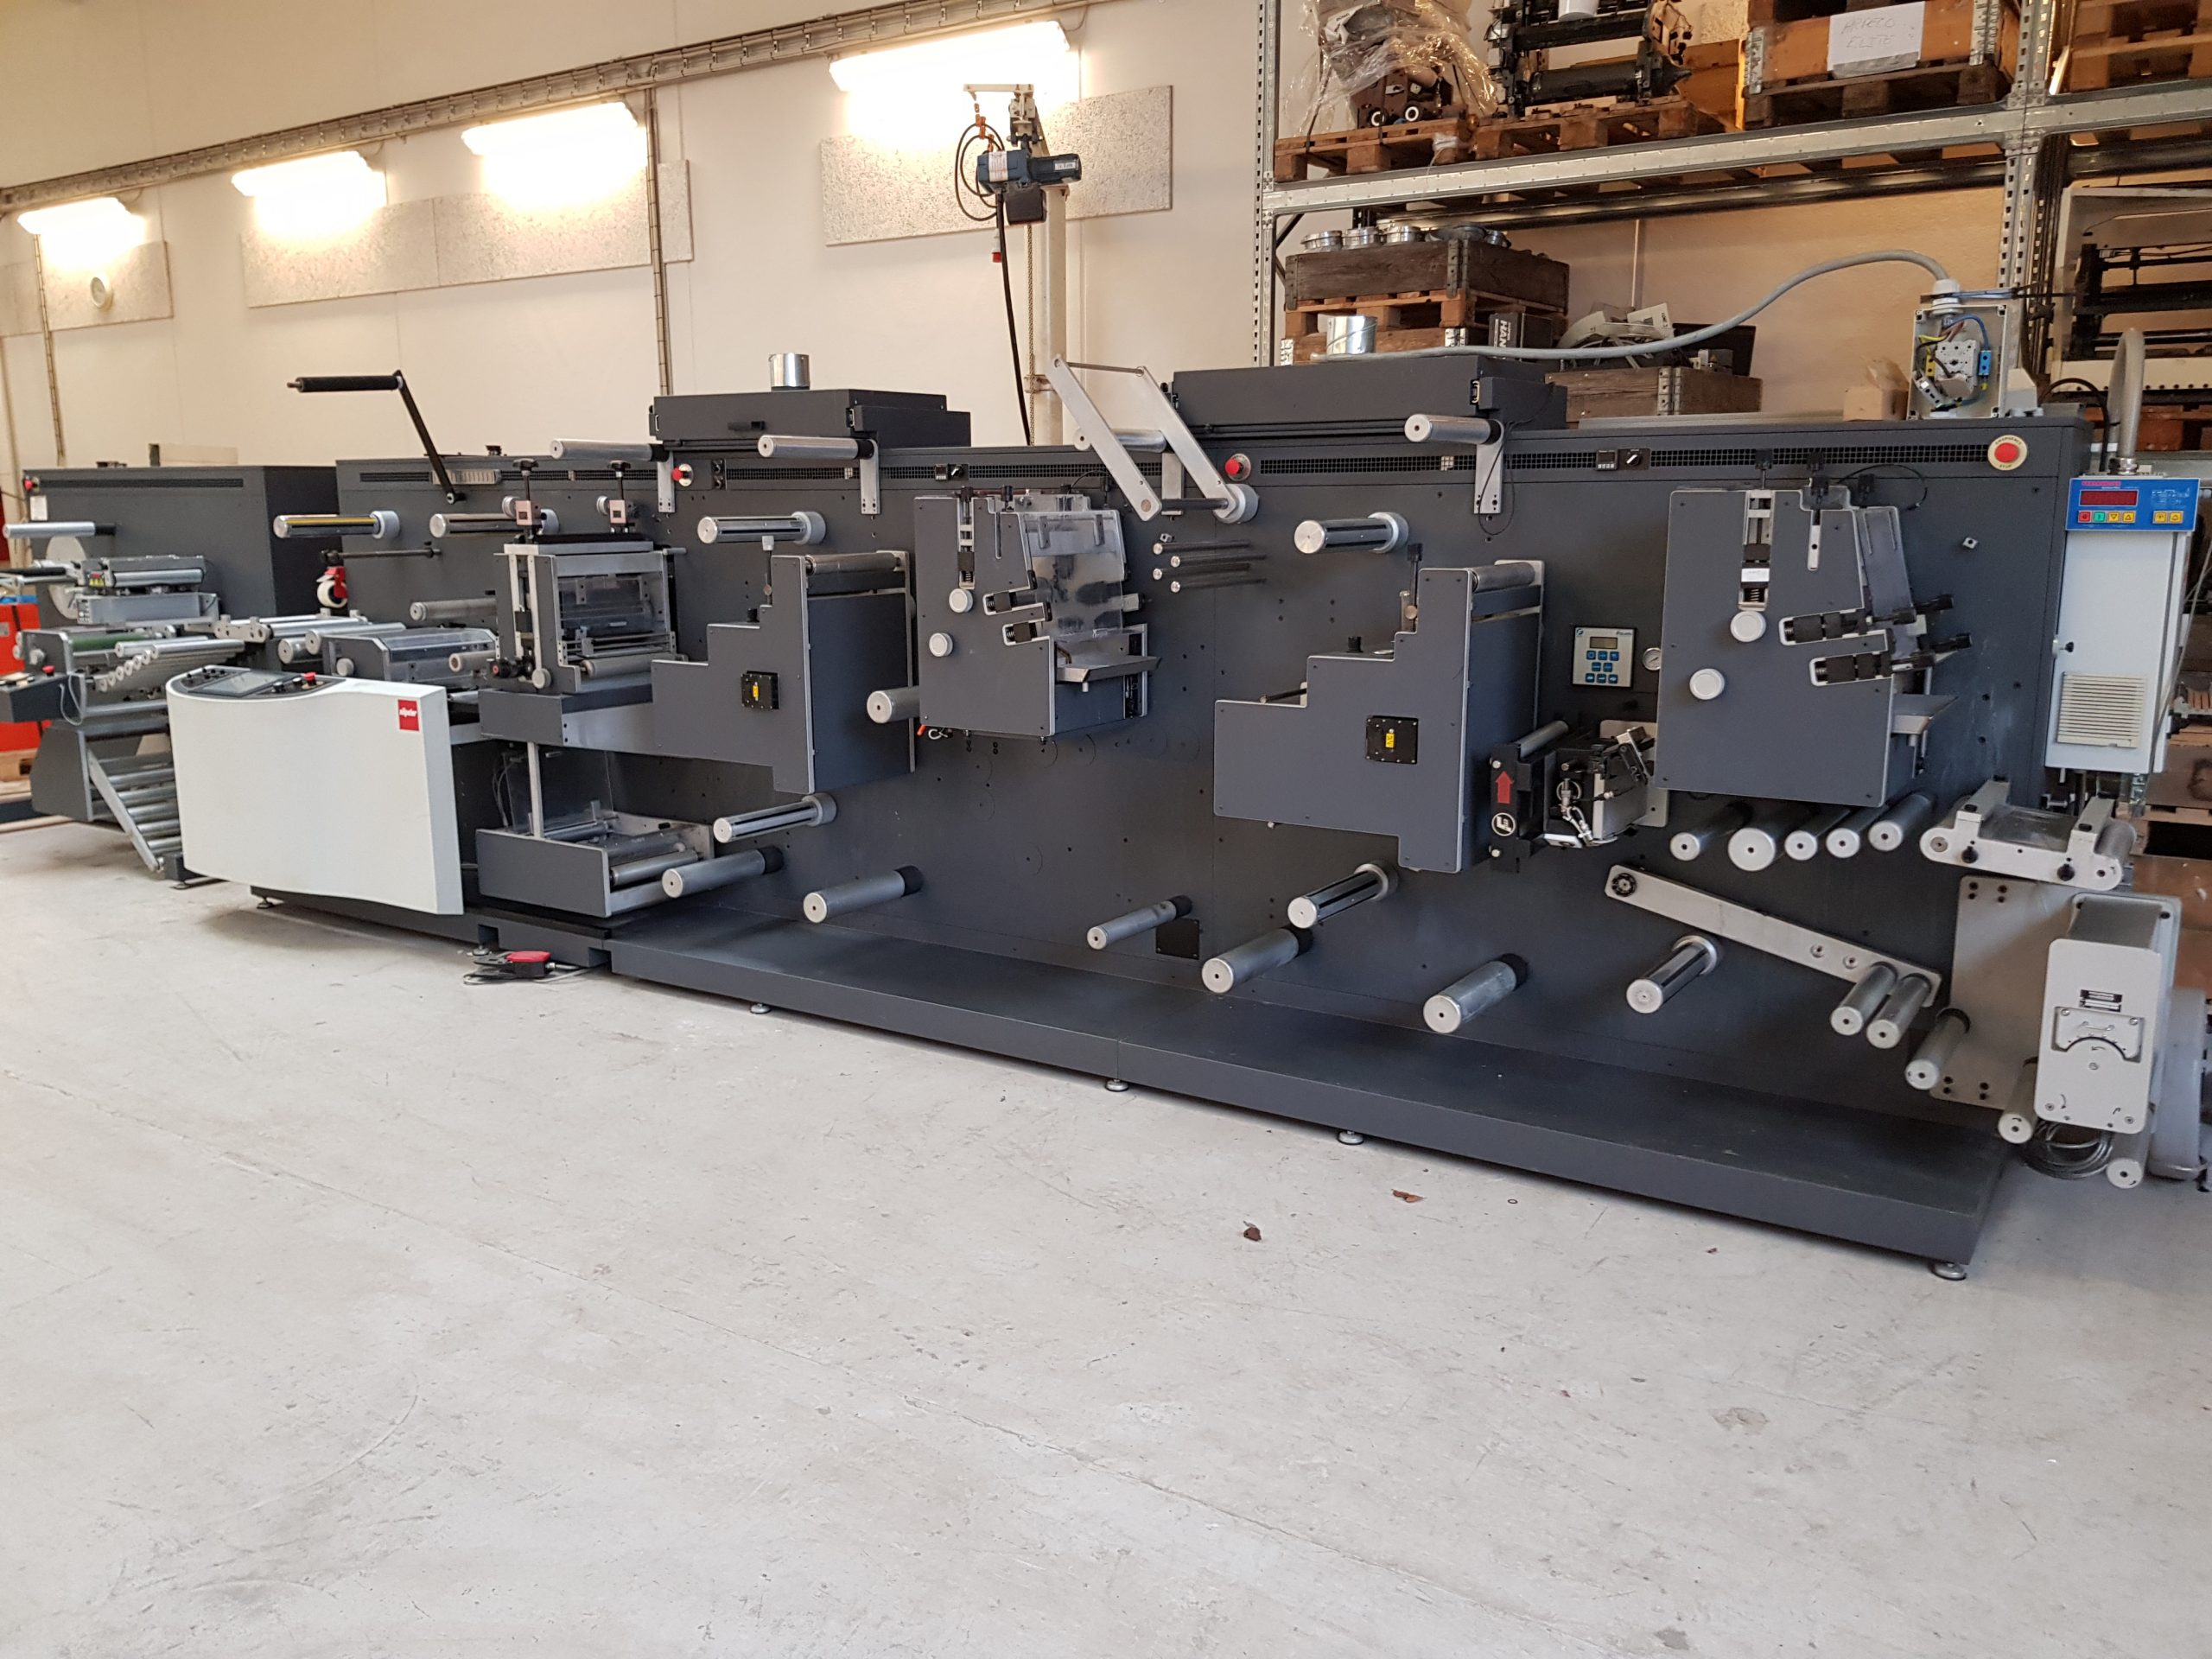 GM DC-330 - Used Flexo Printing Presses and Used Flexographic Equipment-3